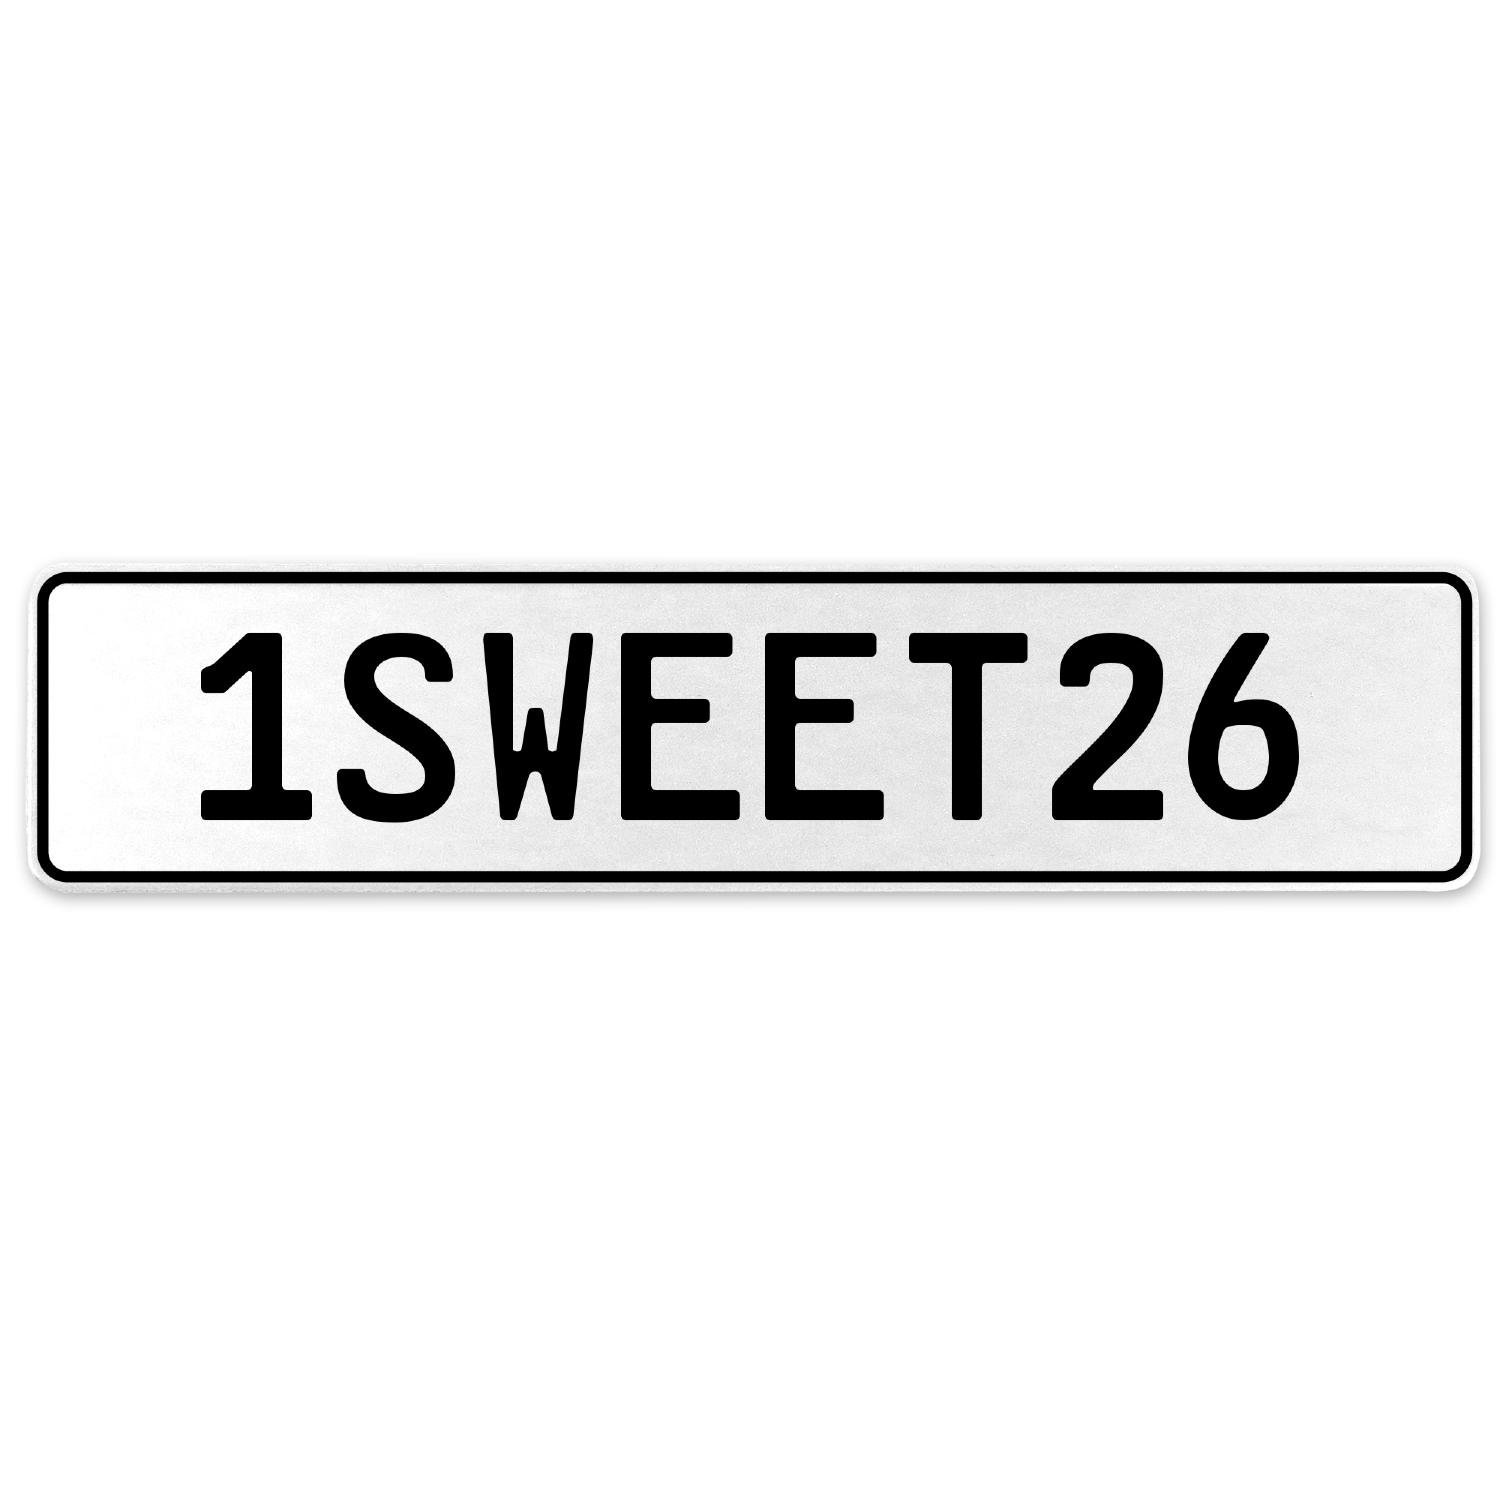 Vintage Parts 554227 1SWEET26 White Stamped Aluminum European License Plate